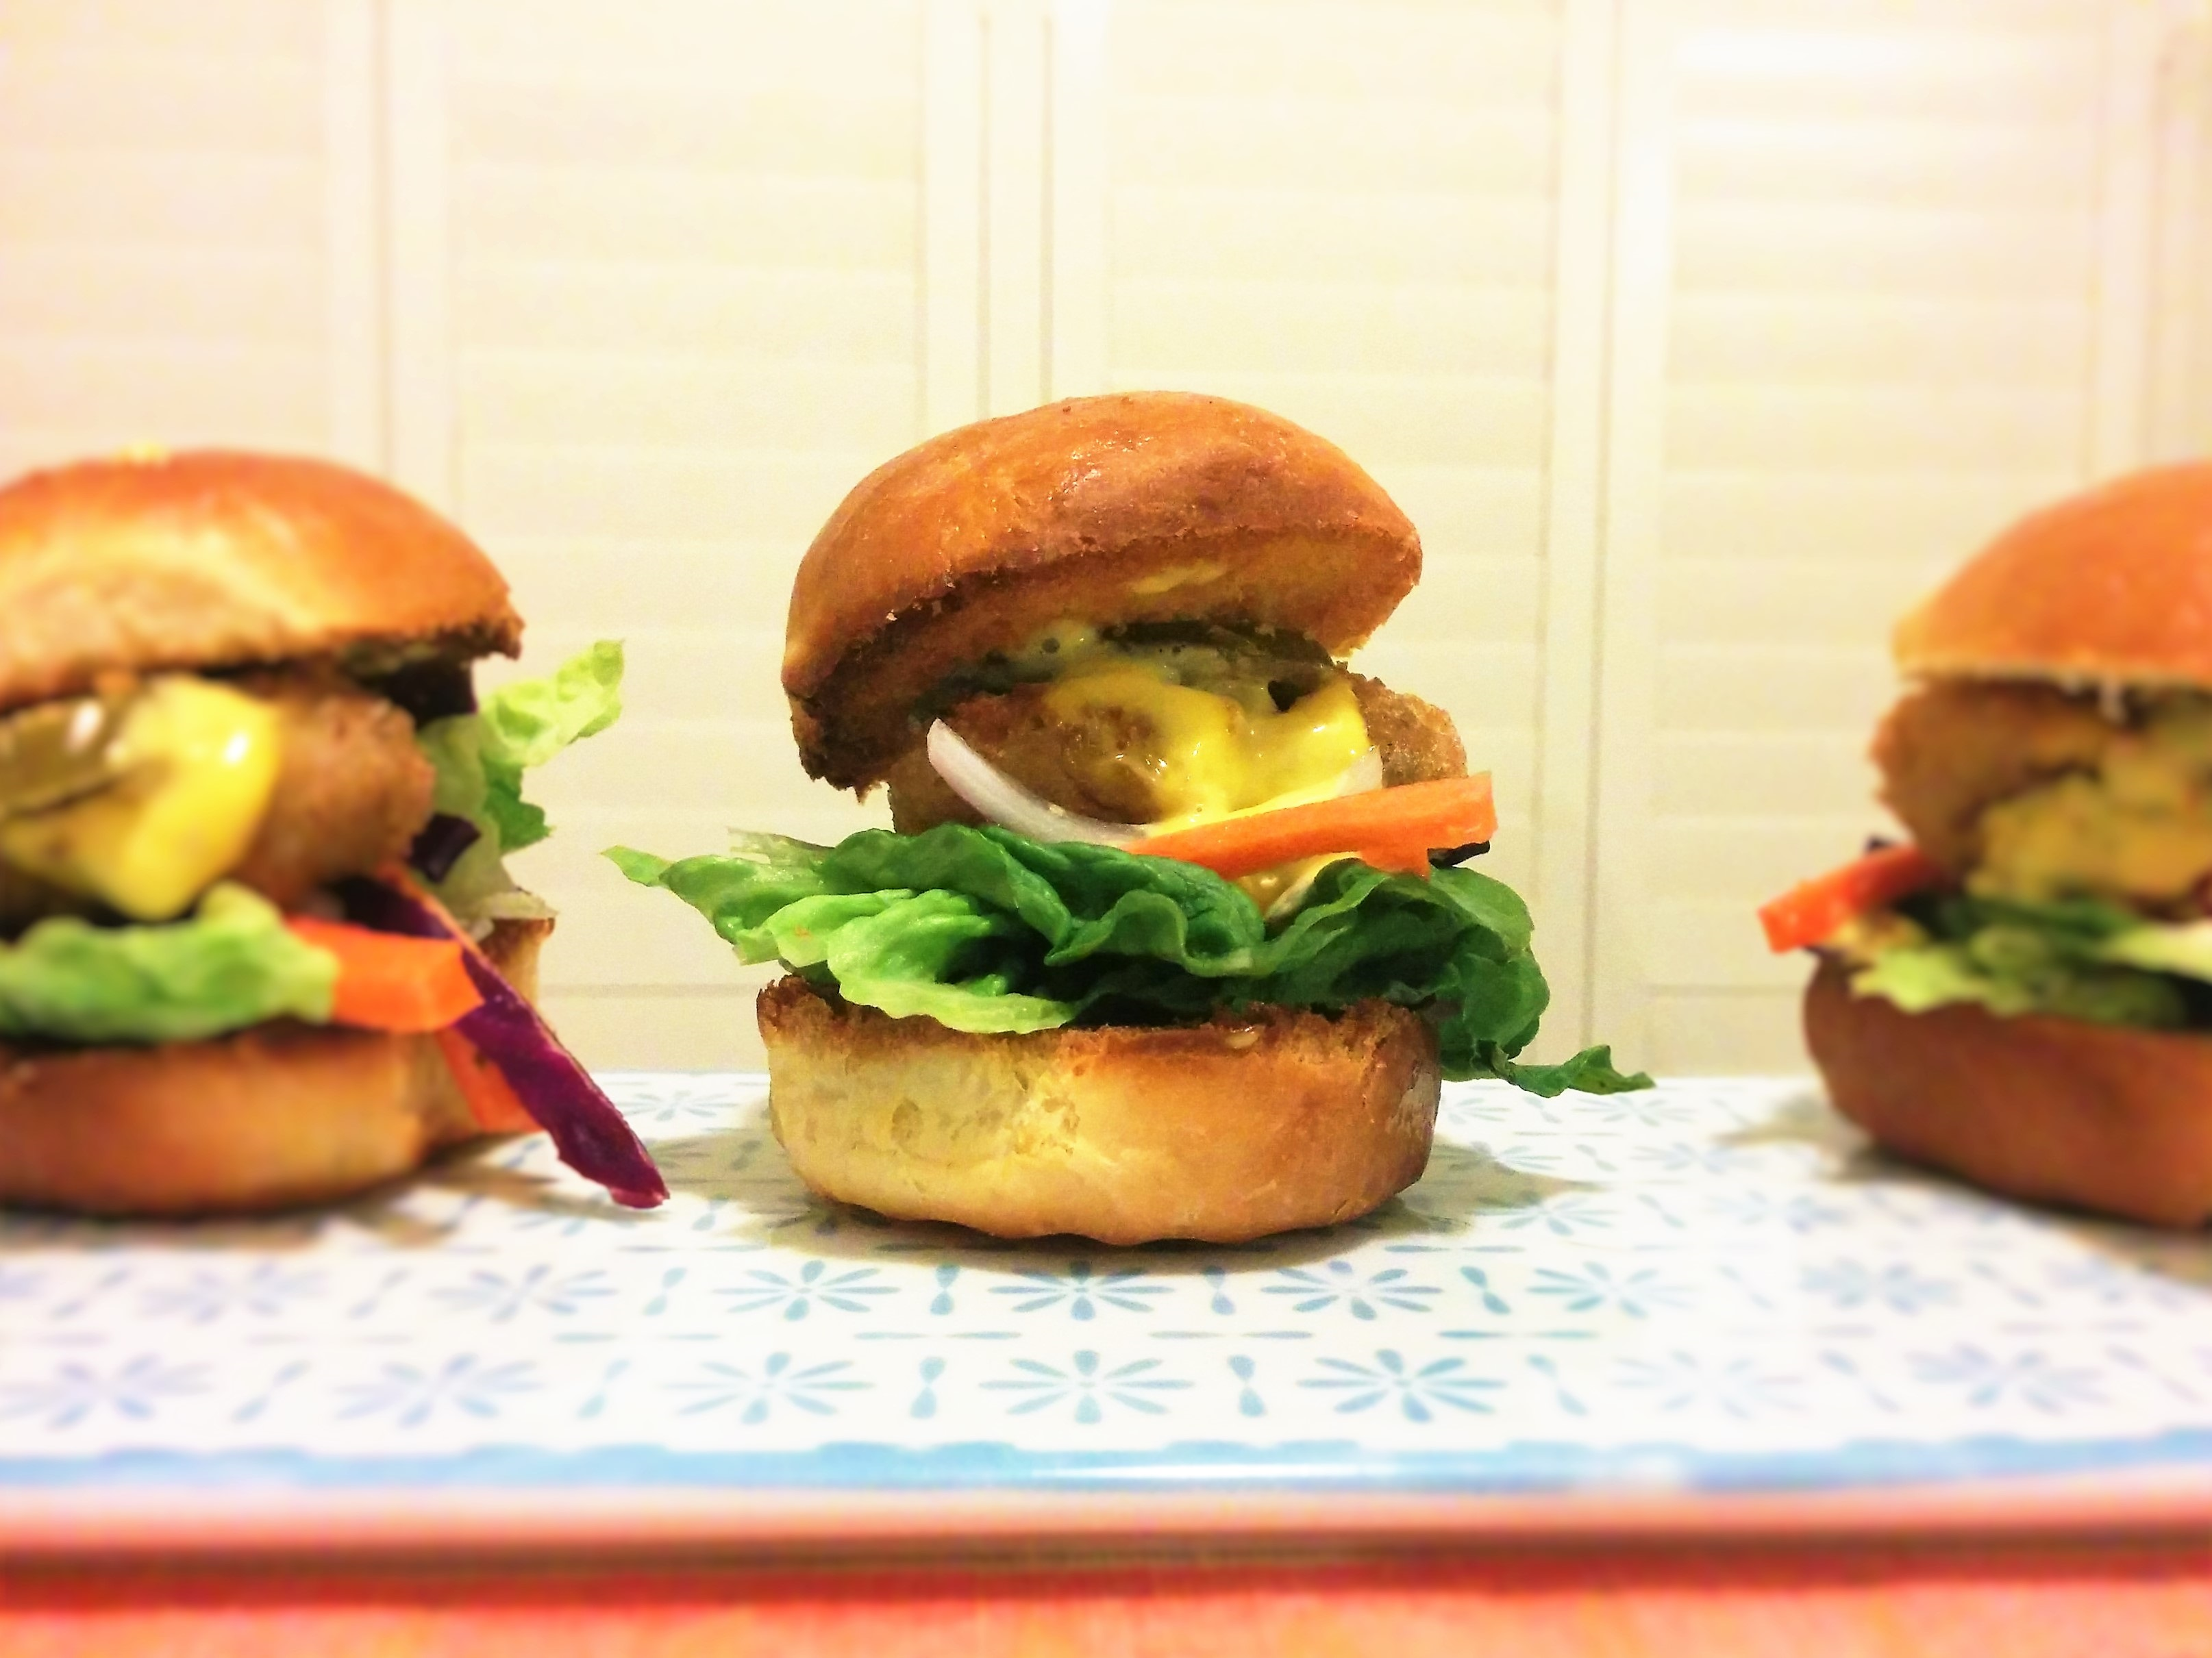 Oyster Sliders Archives - Retro Food For Modern Times